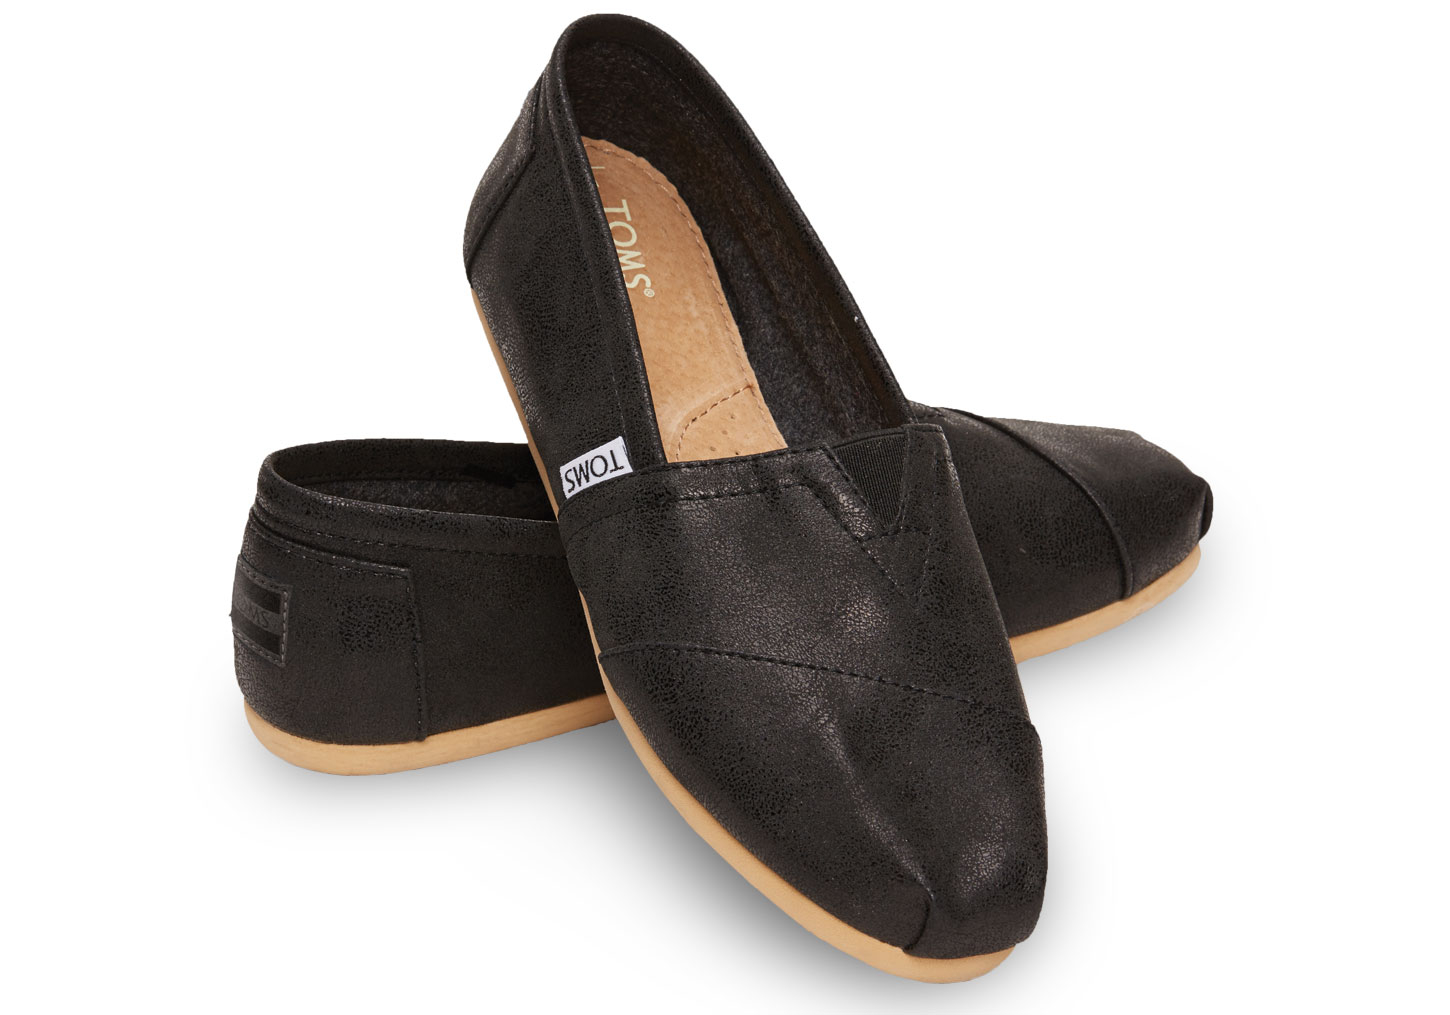 ff515e9c9 TOMS Black Metallic Synthetic Leather Women's Classics in Black - Lyst